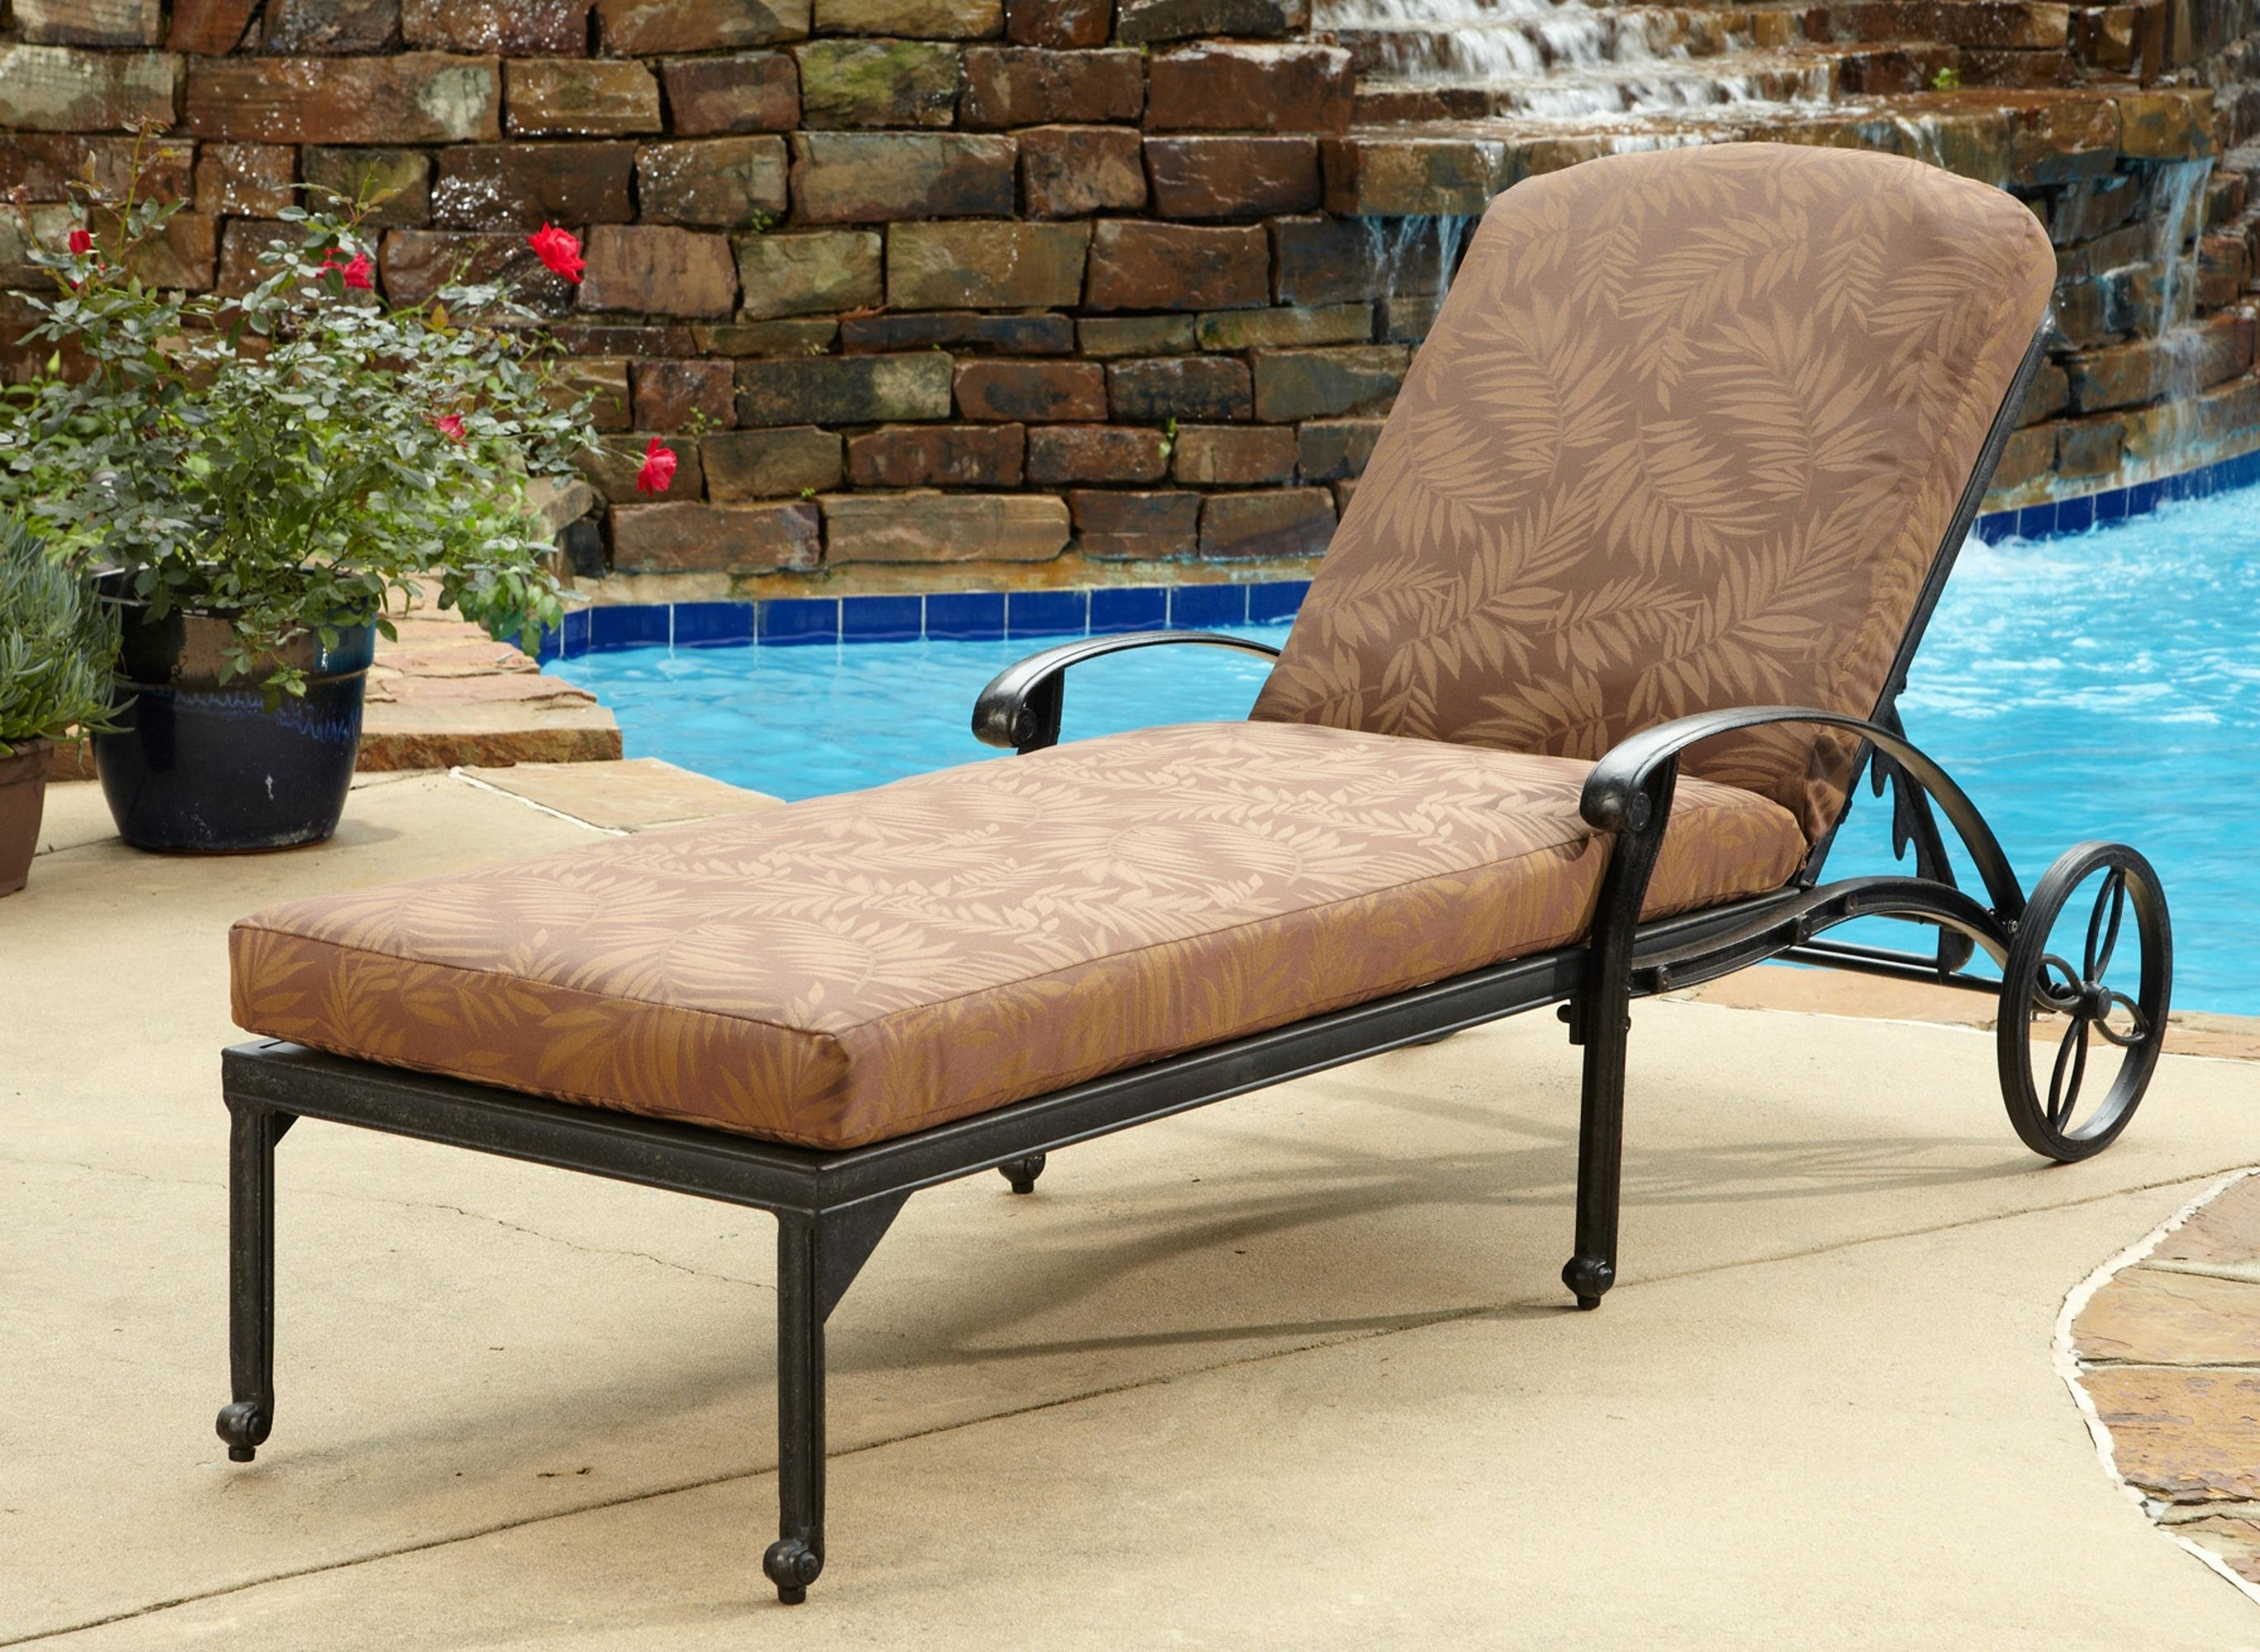 Most Recent Fabric Outdoor Chaise Lounge Chairs With Regard To Pool Lounge Chair Fabric • Lounge Chairs Ideas (View 11 of 15)